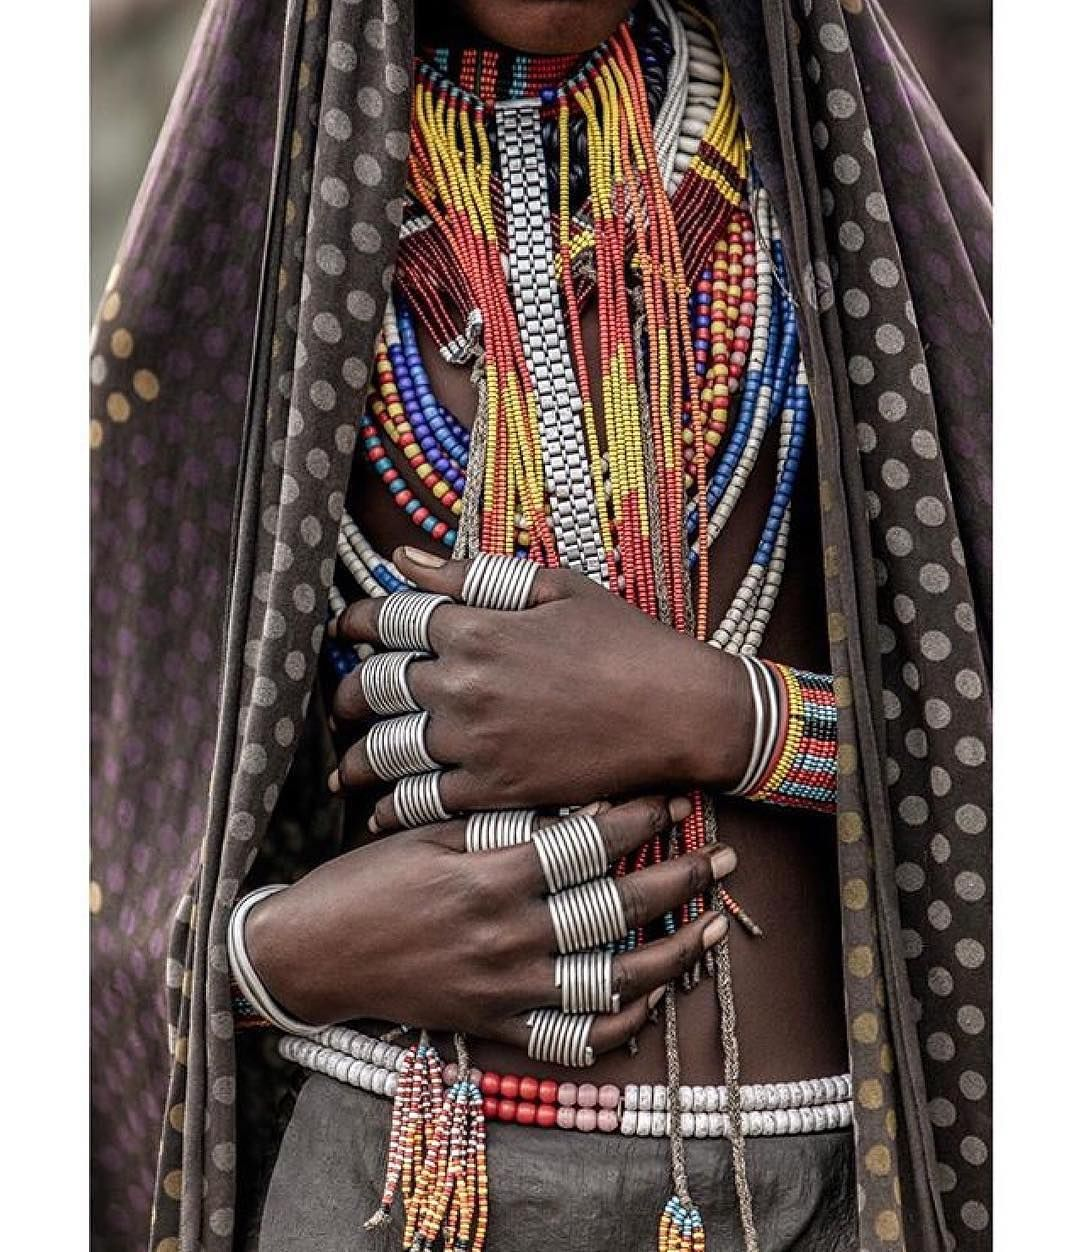 Pin Africa On Instagram Beauty In The Detail Ethiopia